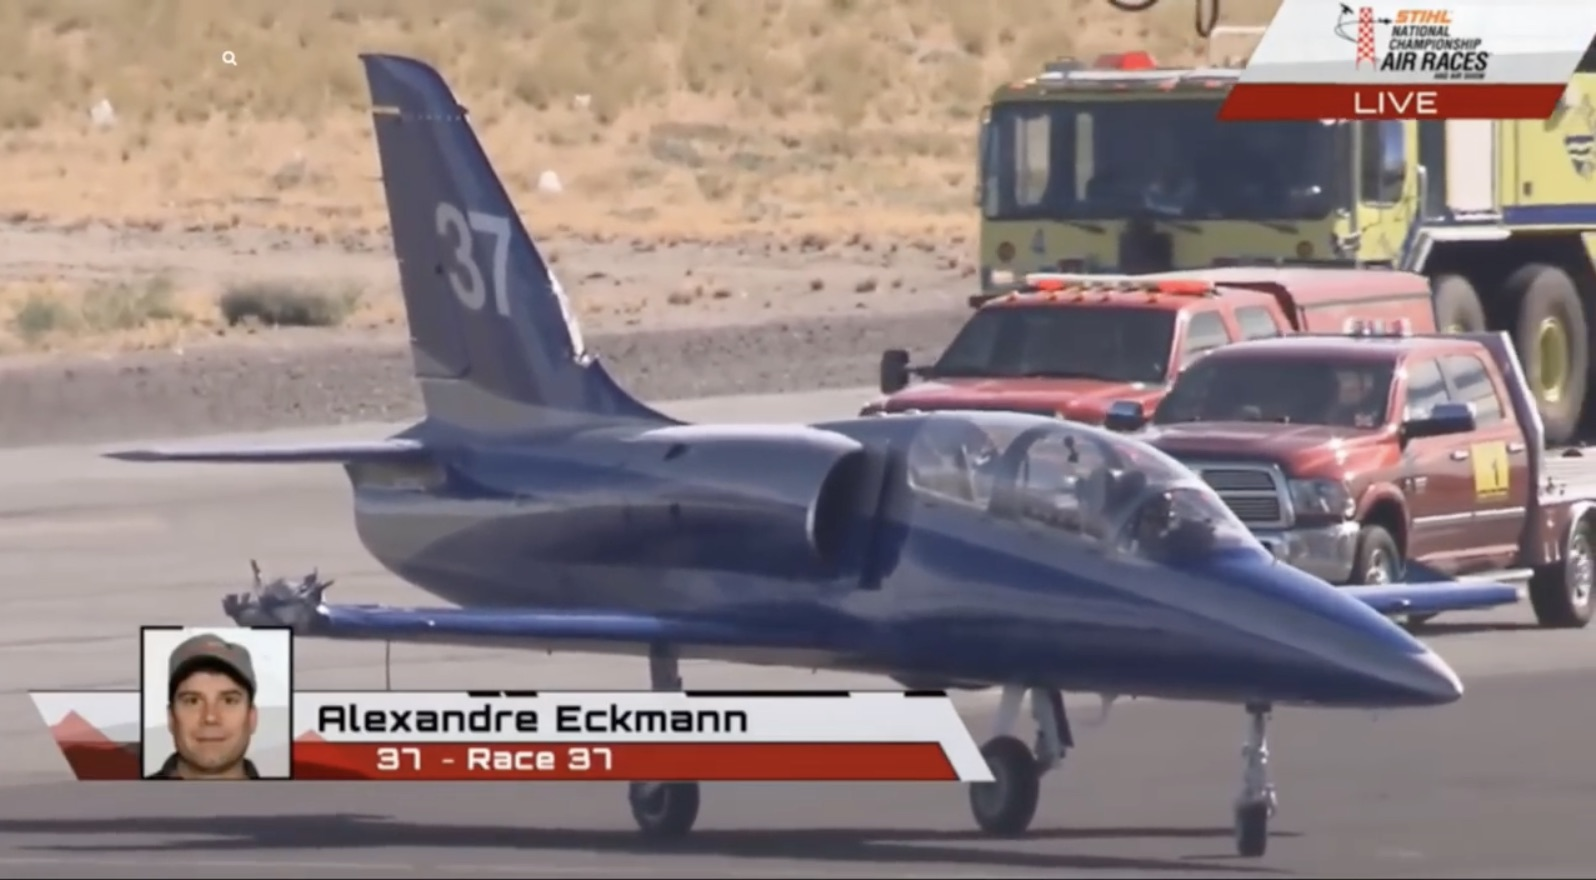 The Ultimate Pucker Moment: The Eckmann/Harnagel Mid-Air Incident At The Reno Air Races